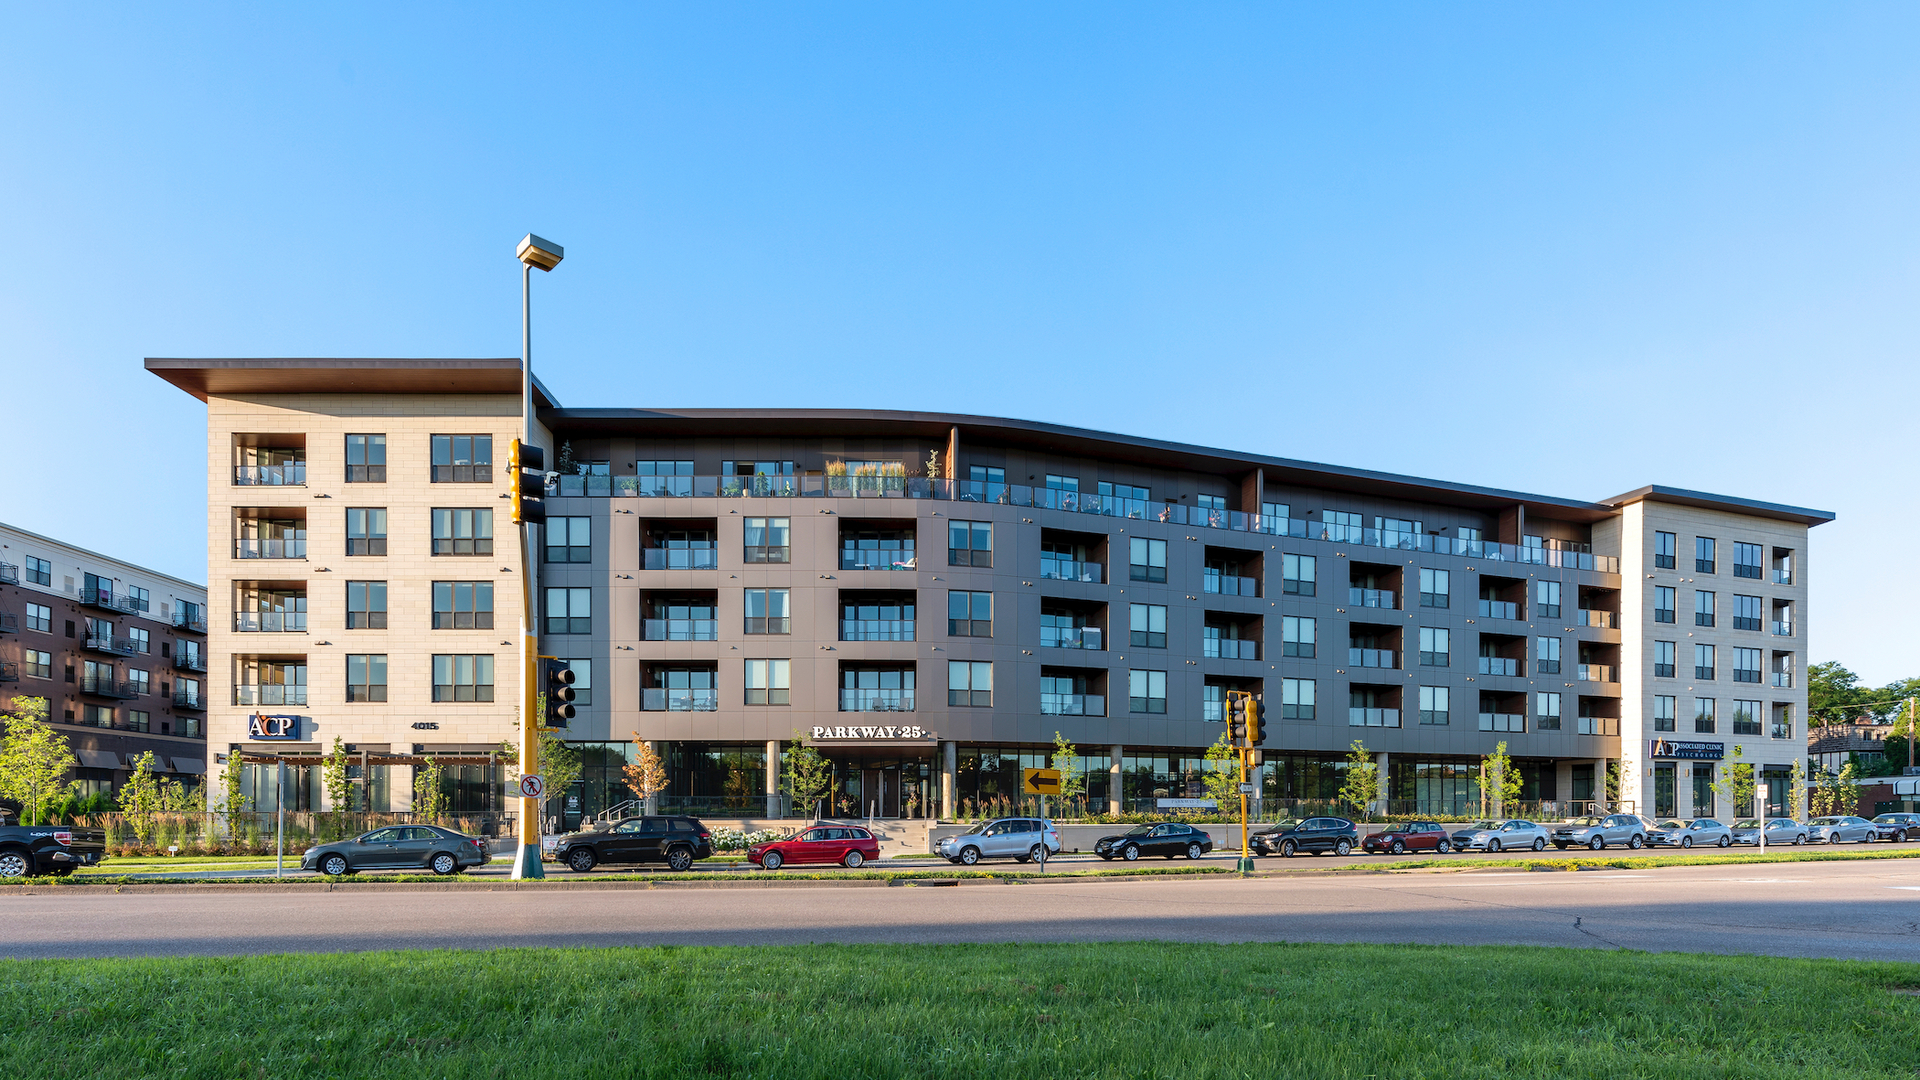 The facade and exterior finish at Parkway 25 Luxury Apartments in St. Louis Park, MN.